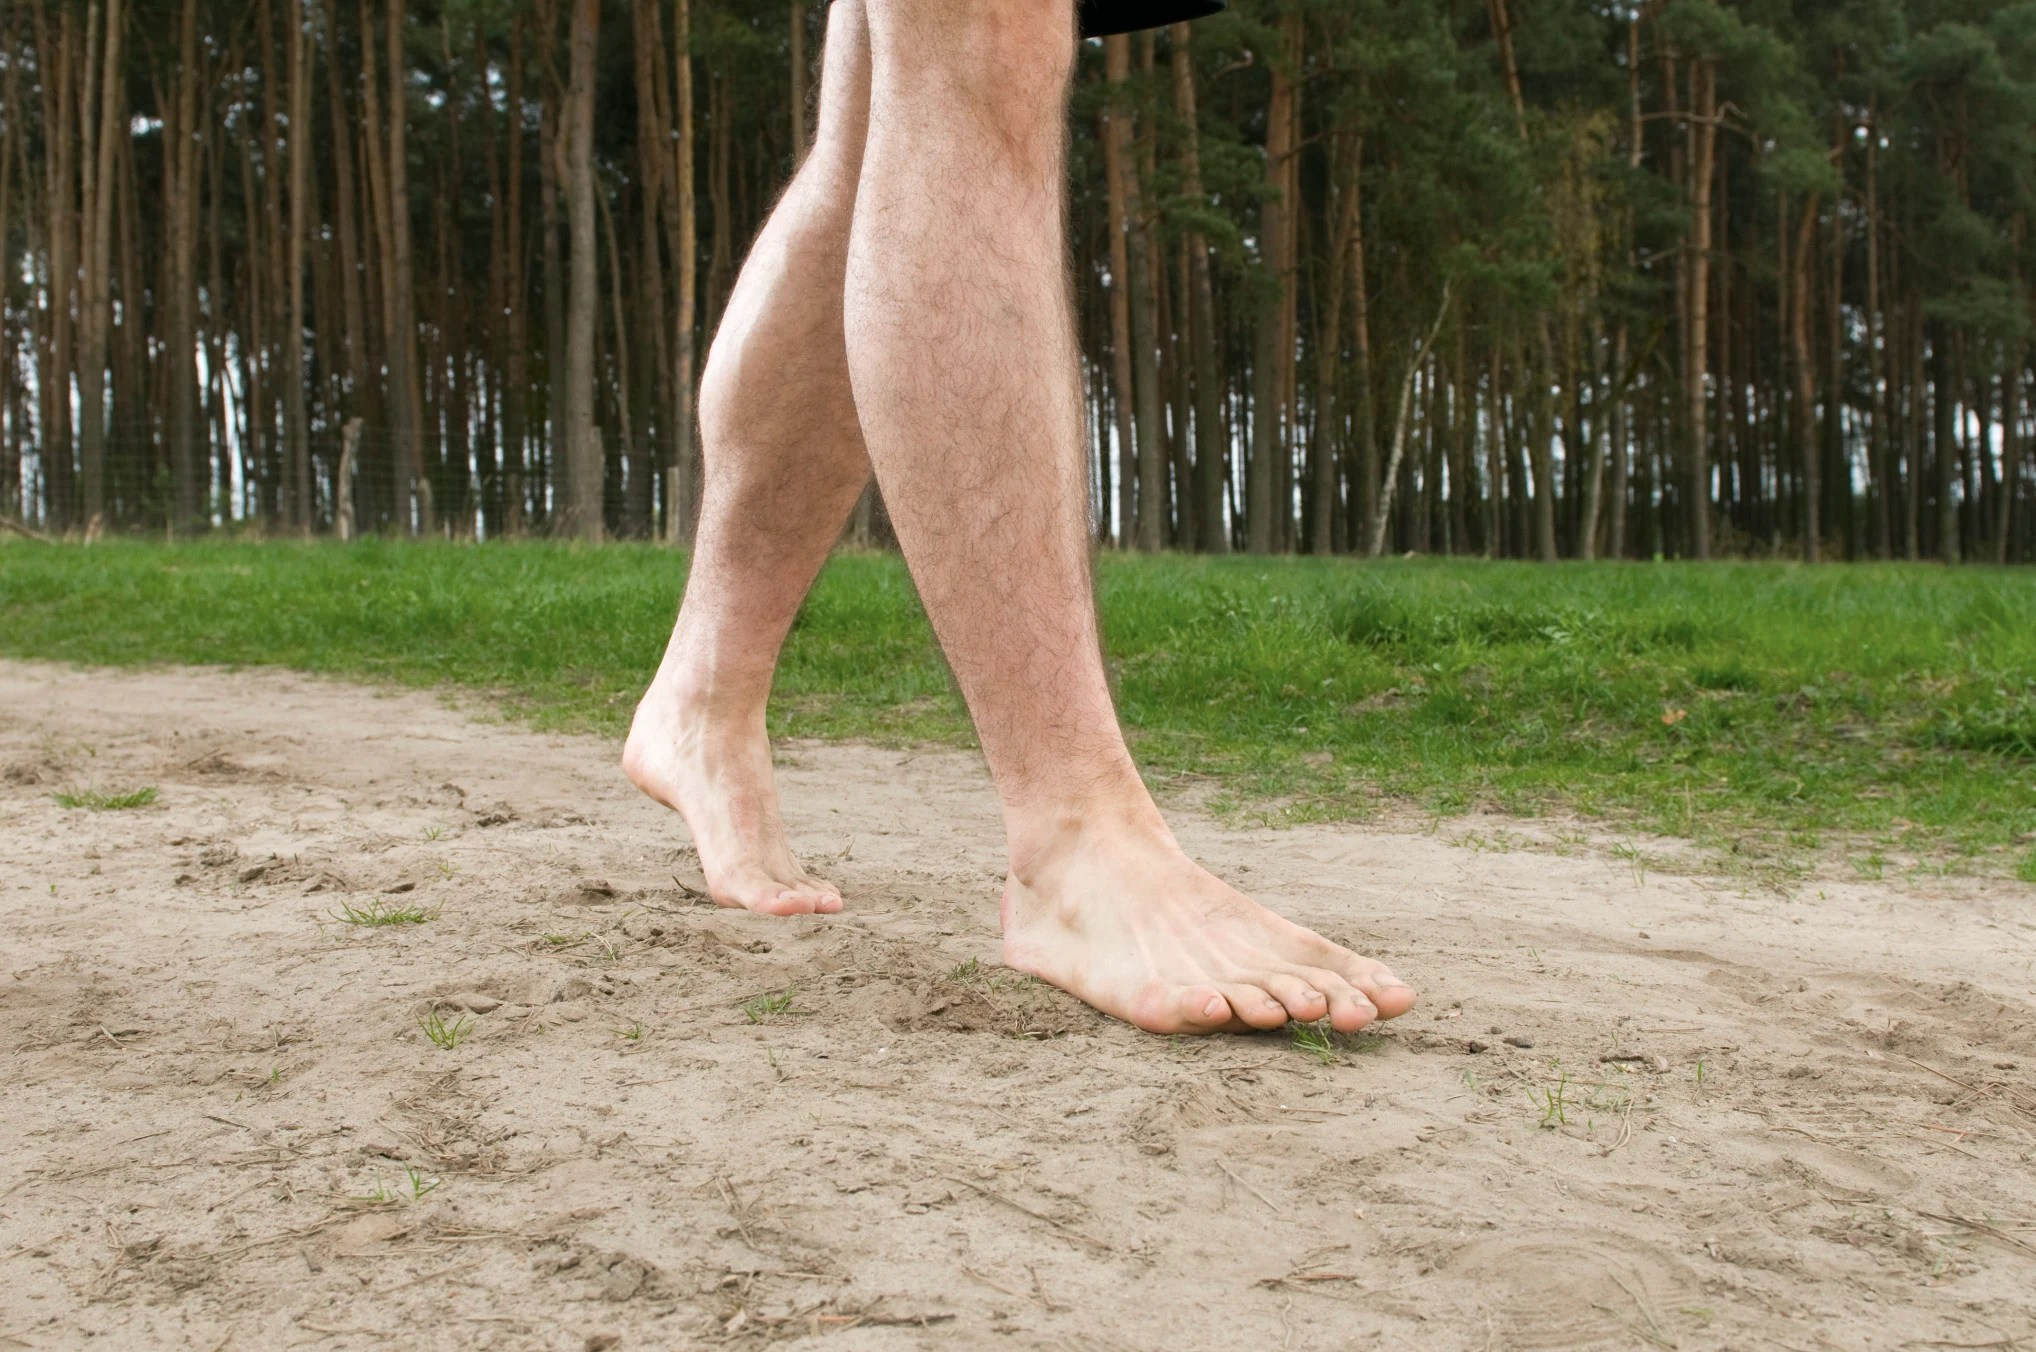 to-clad-legs-and-feet-of-a-young-man-on-a-sand-road-starting-with-wooded-background_t20_K6a1kK